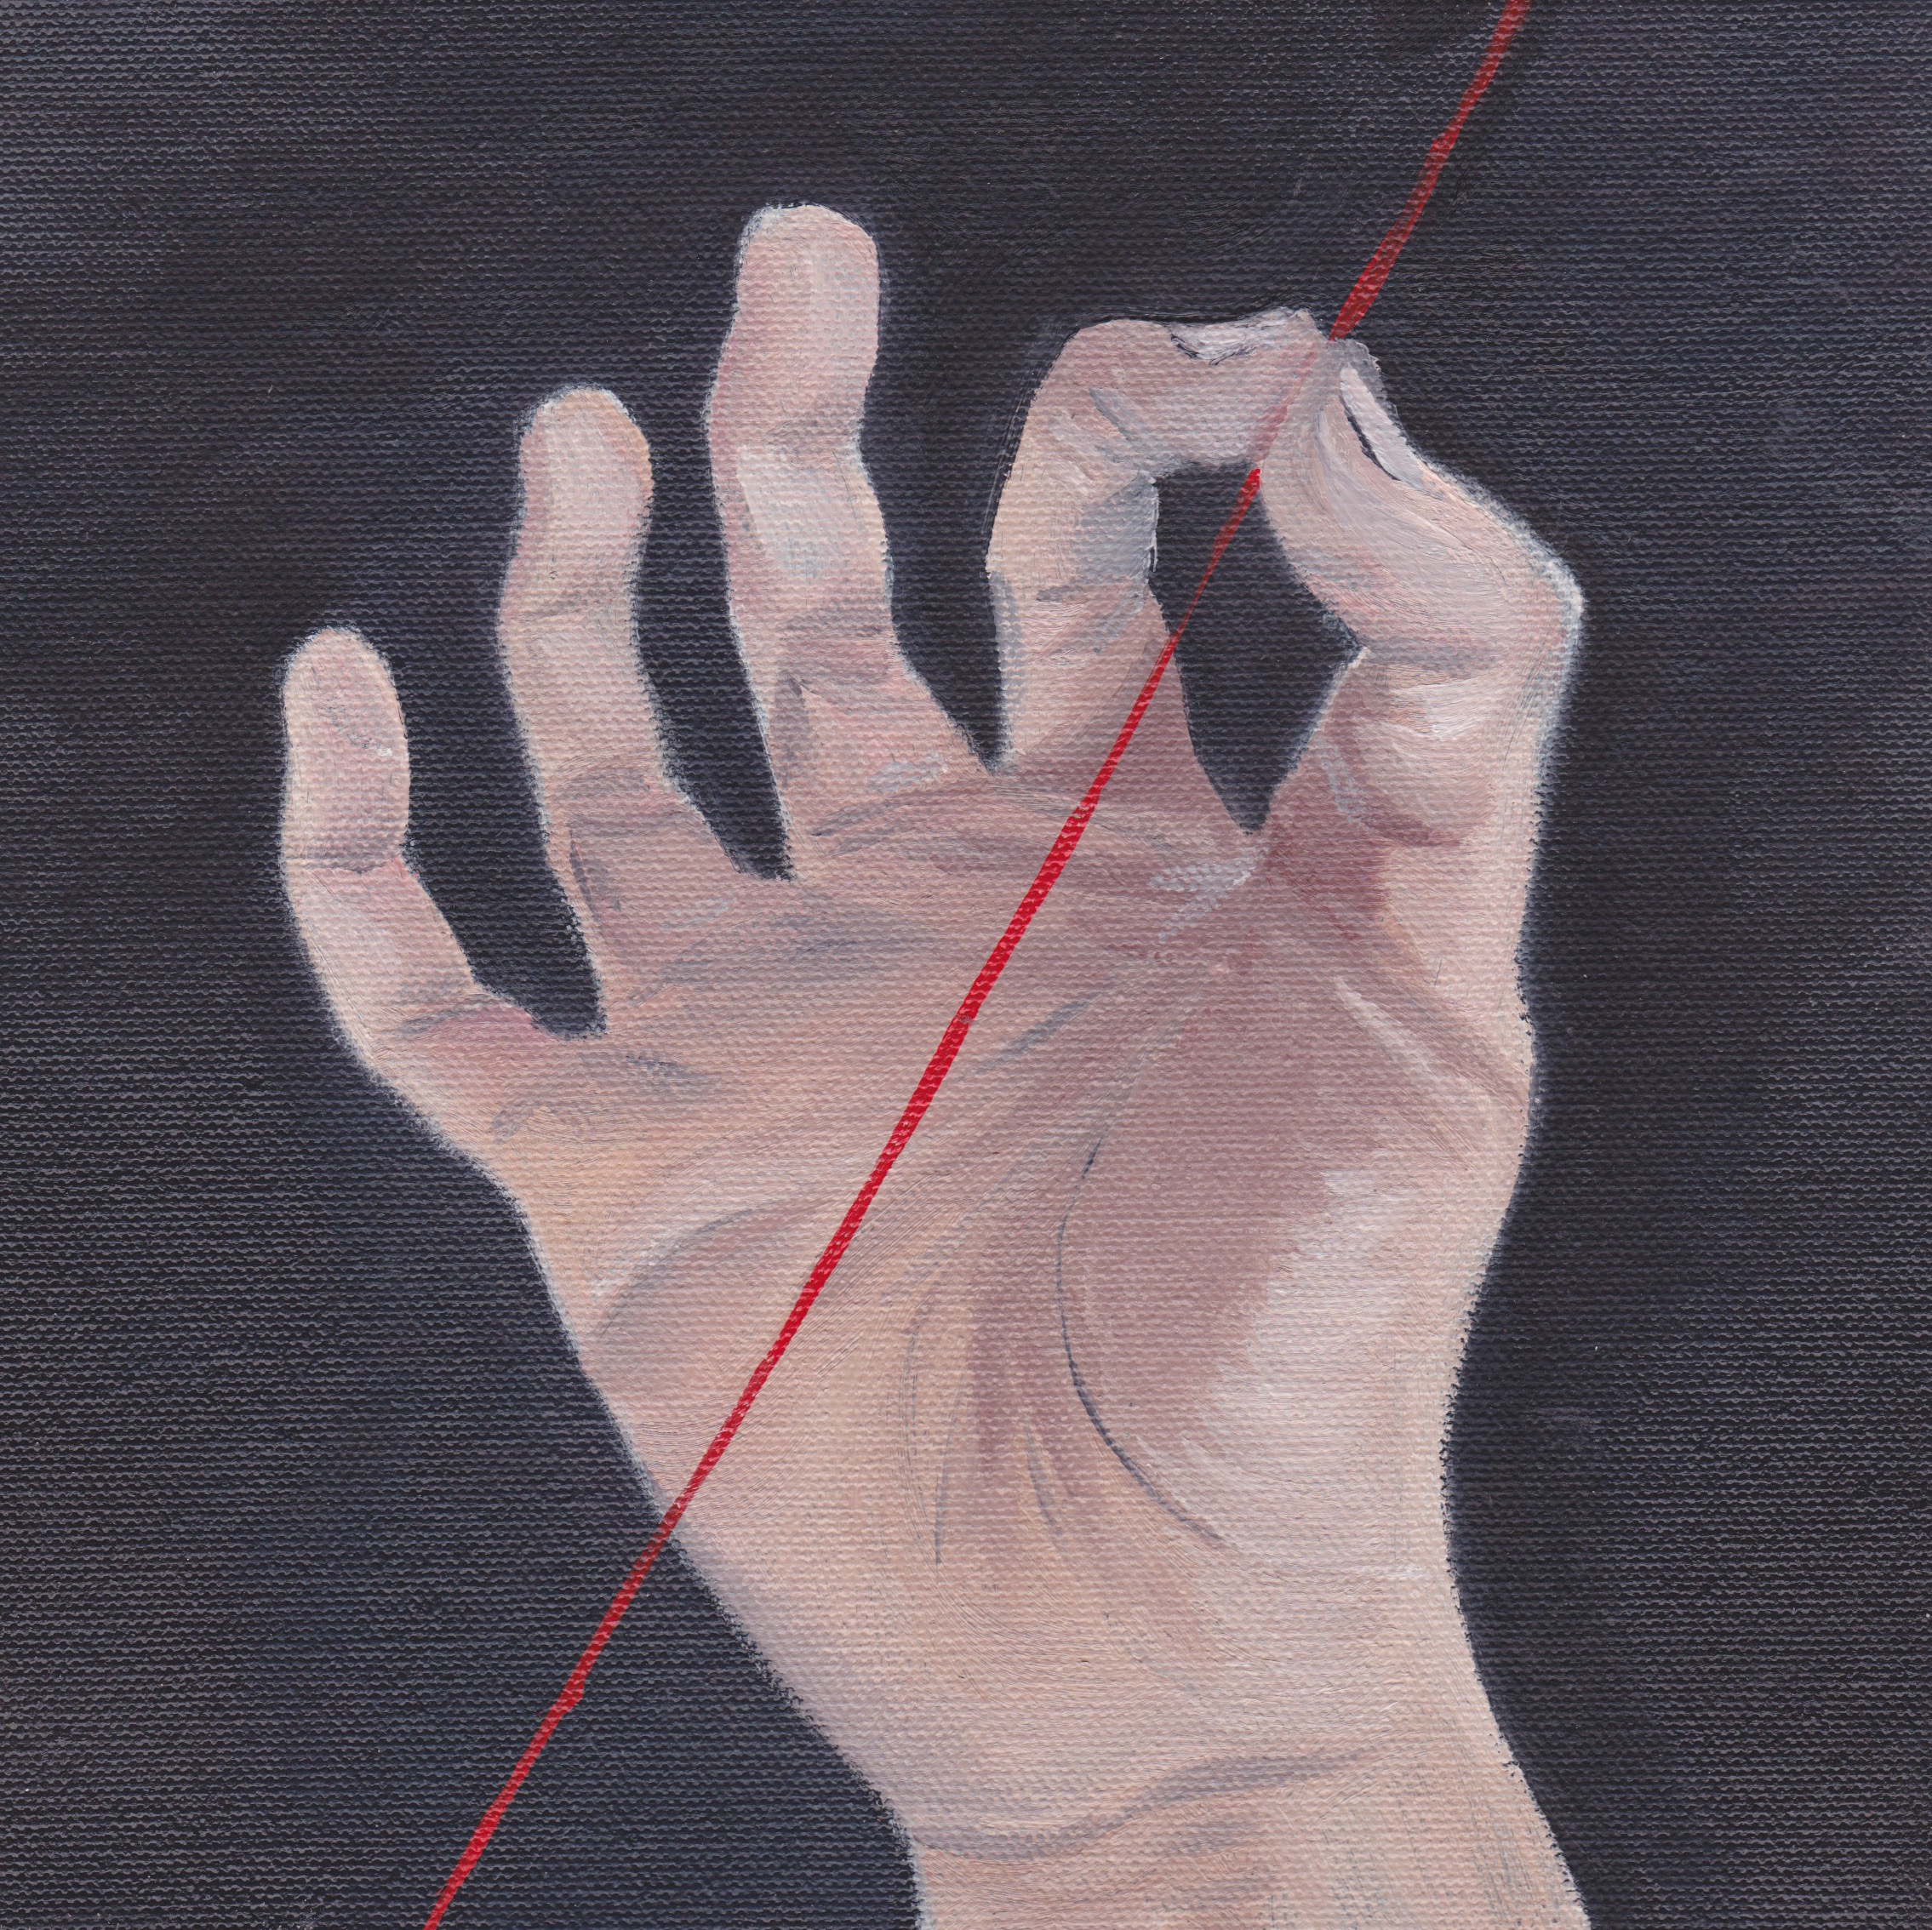 The Red Thread, 2015. Oil on Canvas.